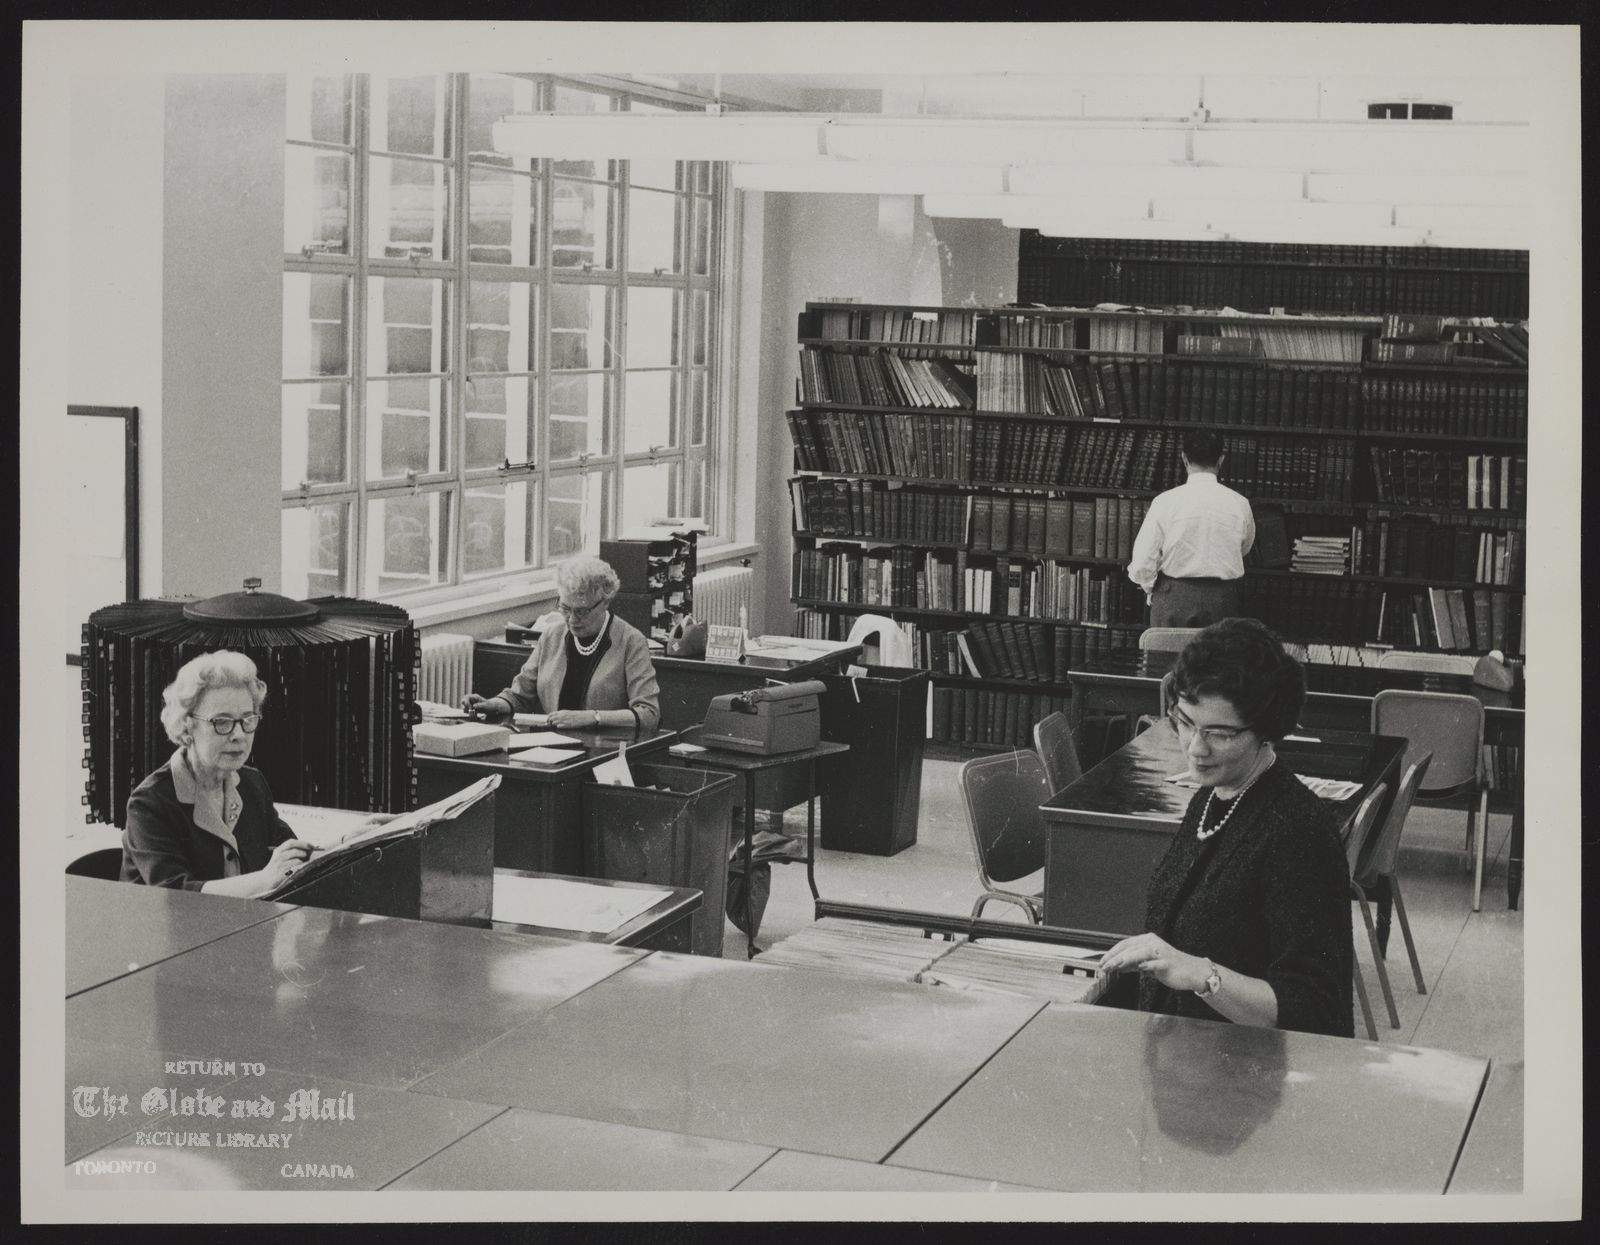 The notes transcribed from the back of this photograph are as follows: [Globe and Mail staff members at work in the editorial library of the William H. Wright building, home of The Globe and Mail in downtown Toronto. Library staff, left to right: Evelyn Haffey, Kay Chalmer, David Rhydwen at rear with back to camera, Cathie Cunningham. Photo by John Boyd / The Globe and Mai